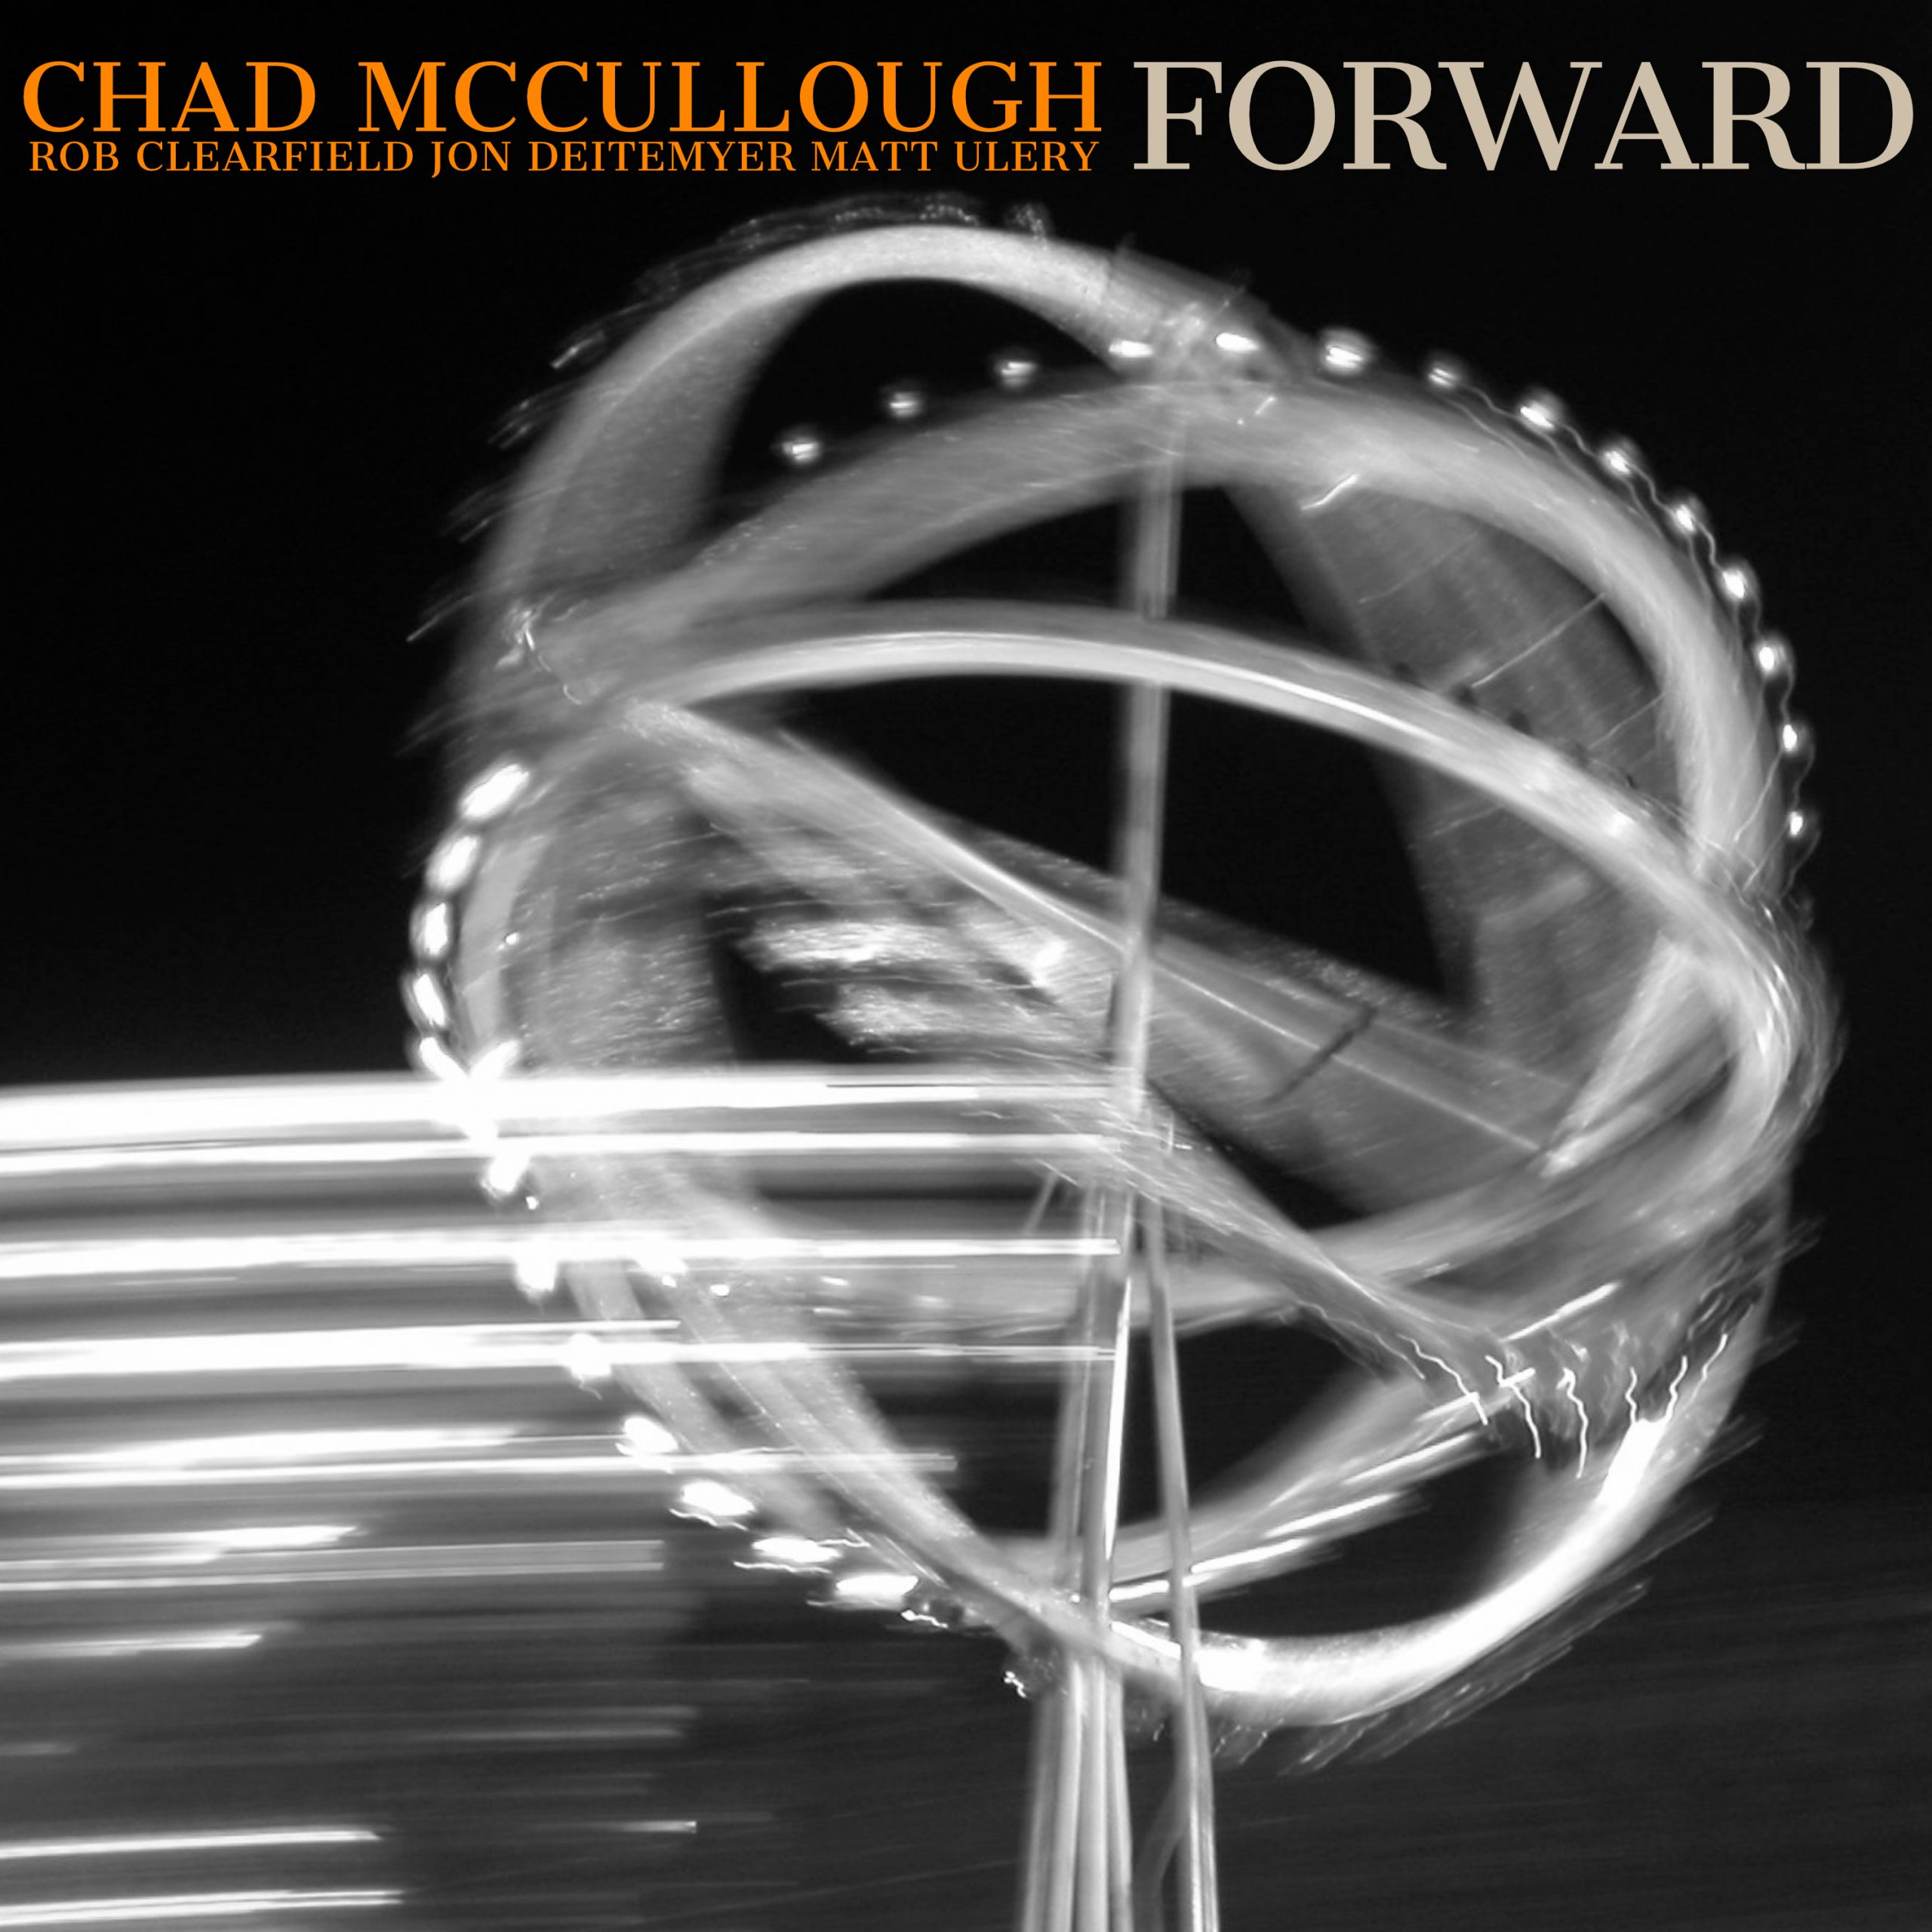 NEW RELEASE: Chad McCullough's FORWARD is out October 16, 2020 on Outside in Music